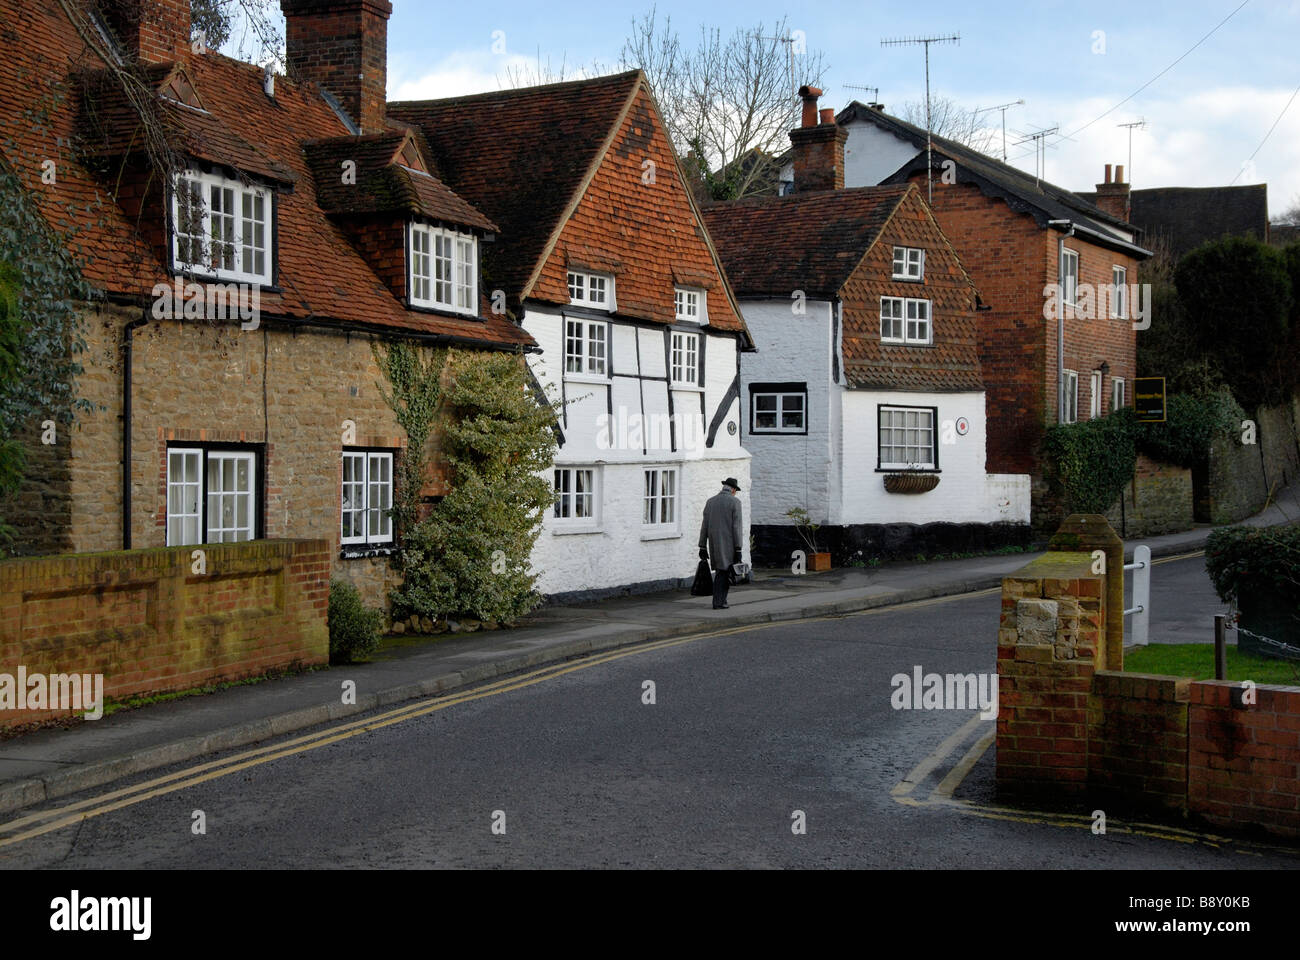 16th and 17th century cottages on Mill Lane with man in long coat and hat walking past, Godalming, Surrey, England - Stock Image